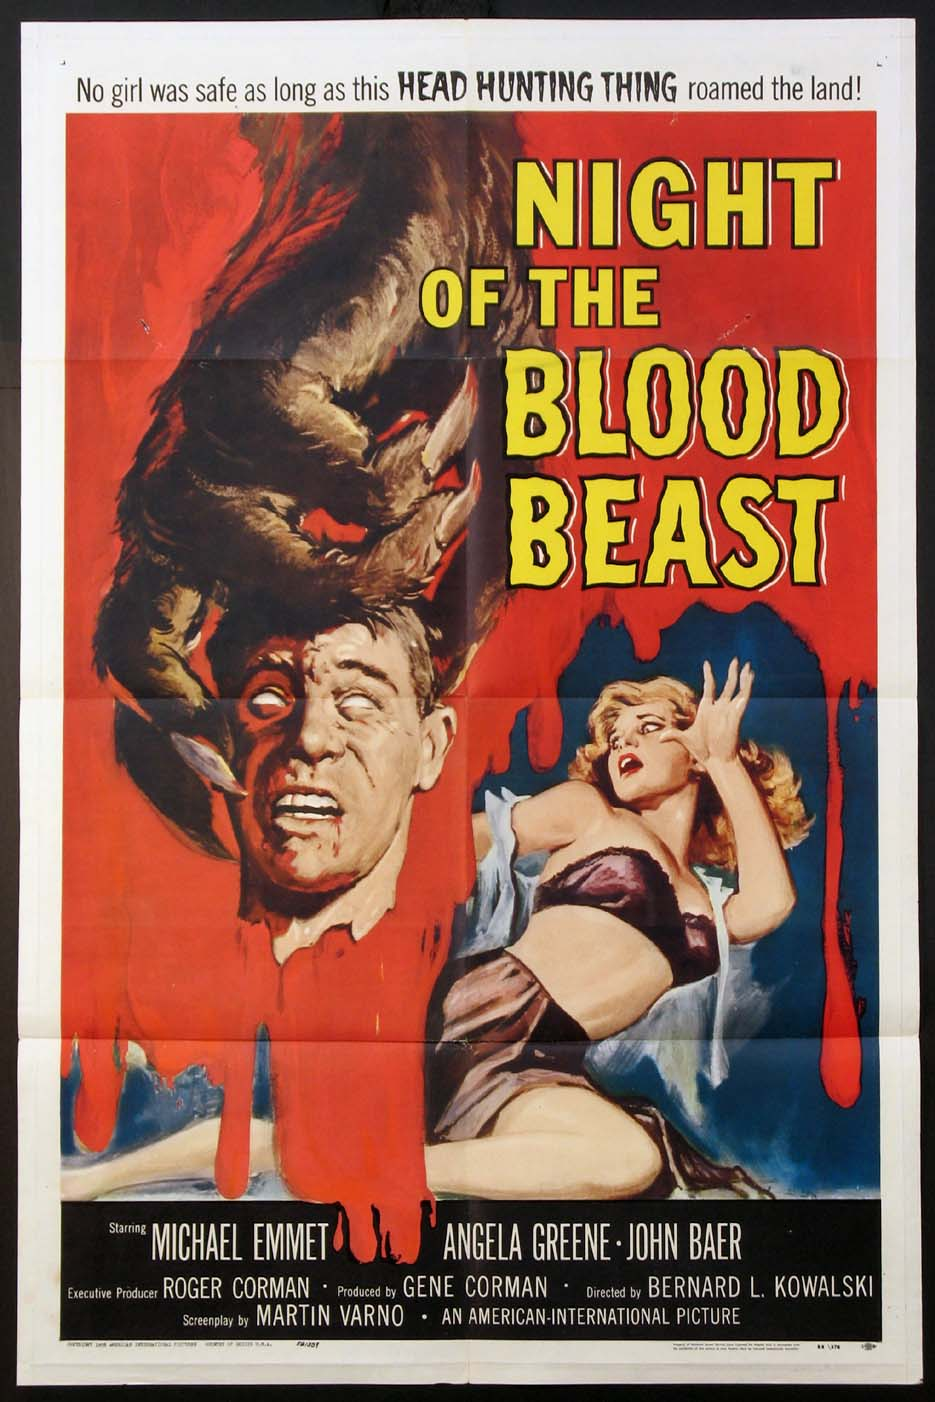 NIGHT OF THE BLOOD BEAST @ FilmPosters.com